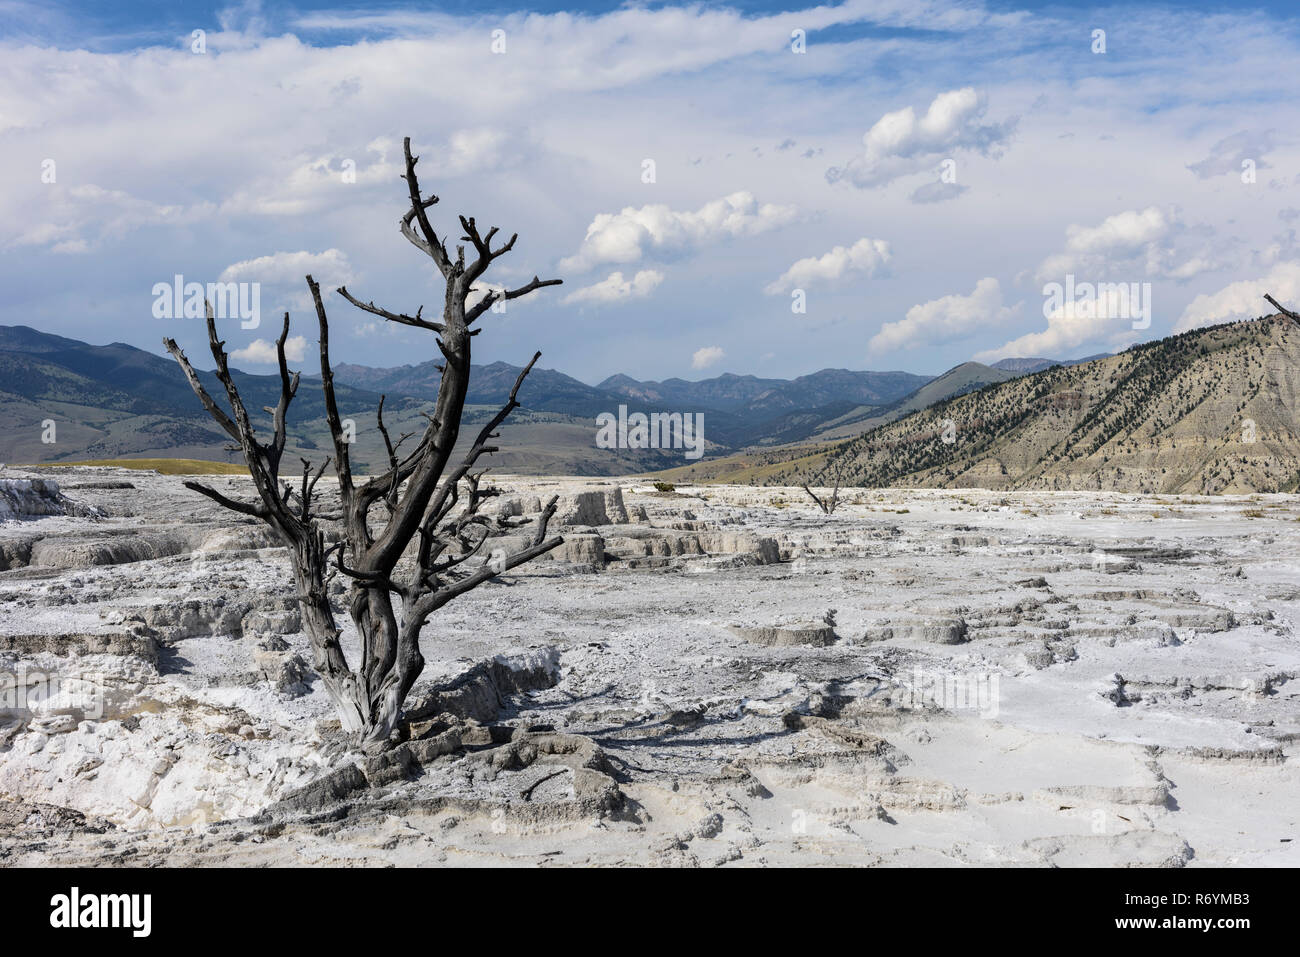 Brutal nature at Yellowstone National Park - Stock Image